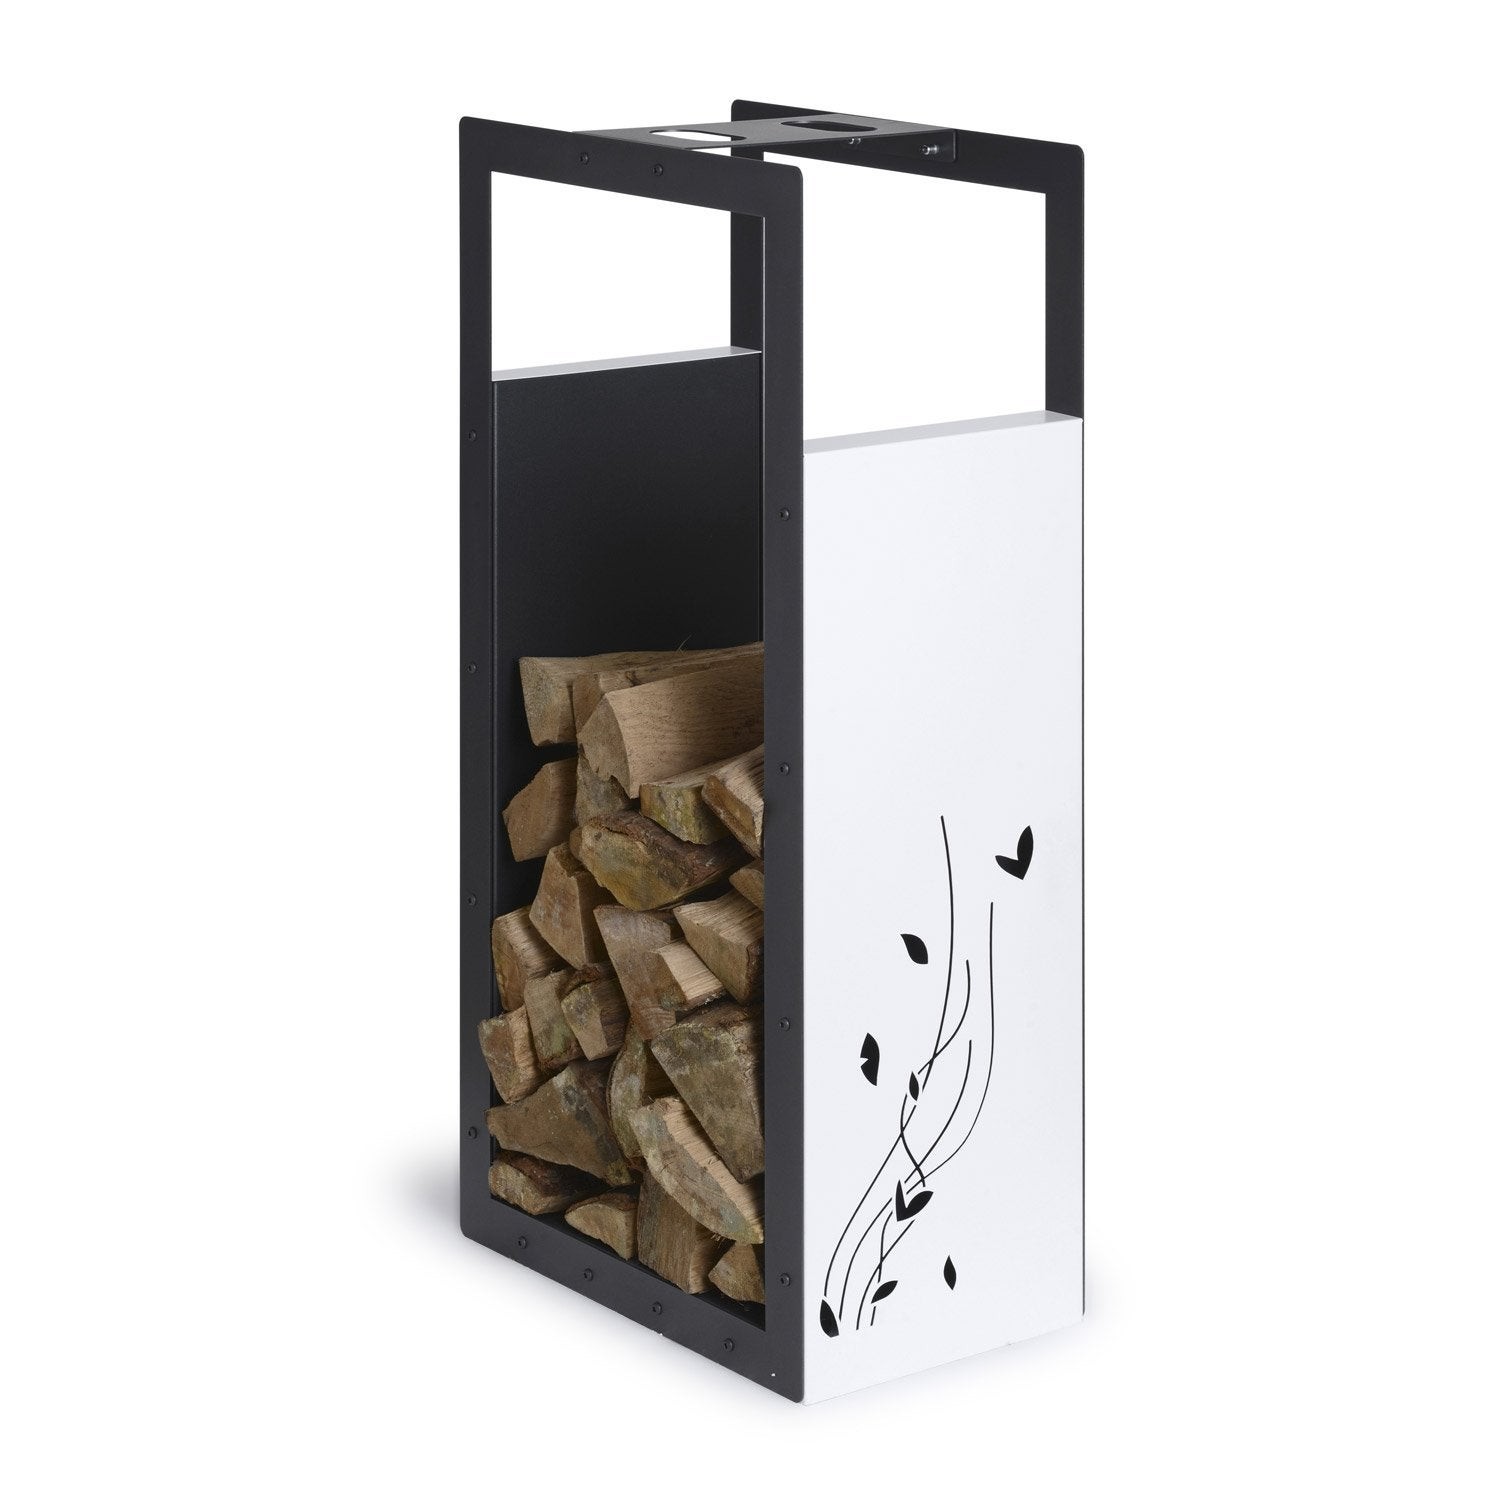 Porte b ches blanc et noir sabl equation x cm for Meuble porte buche